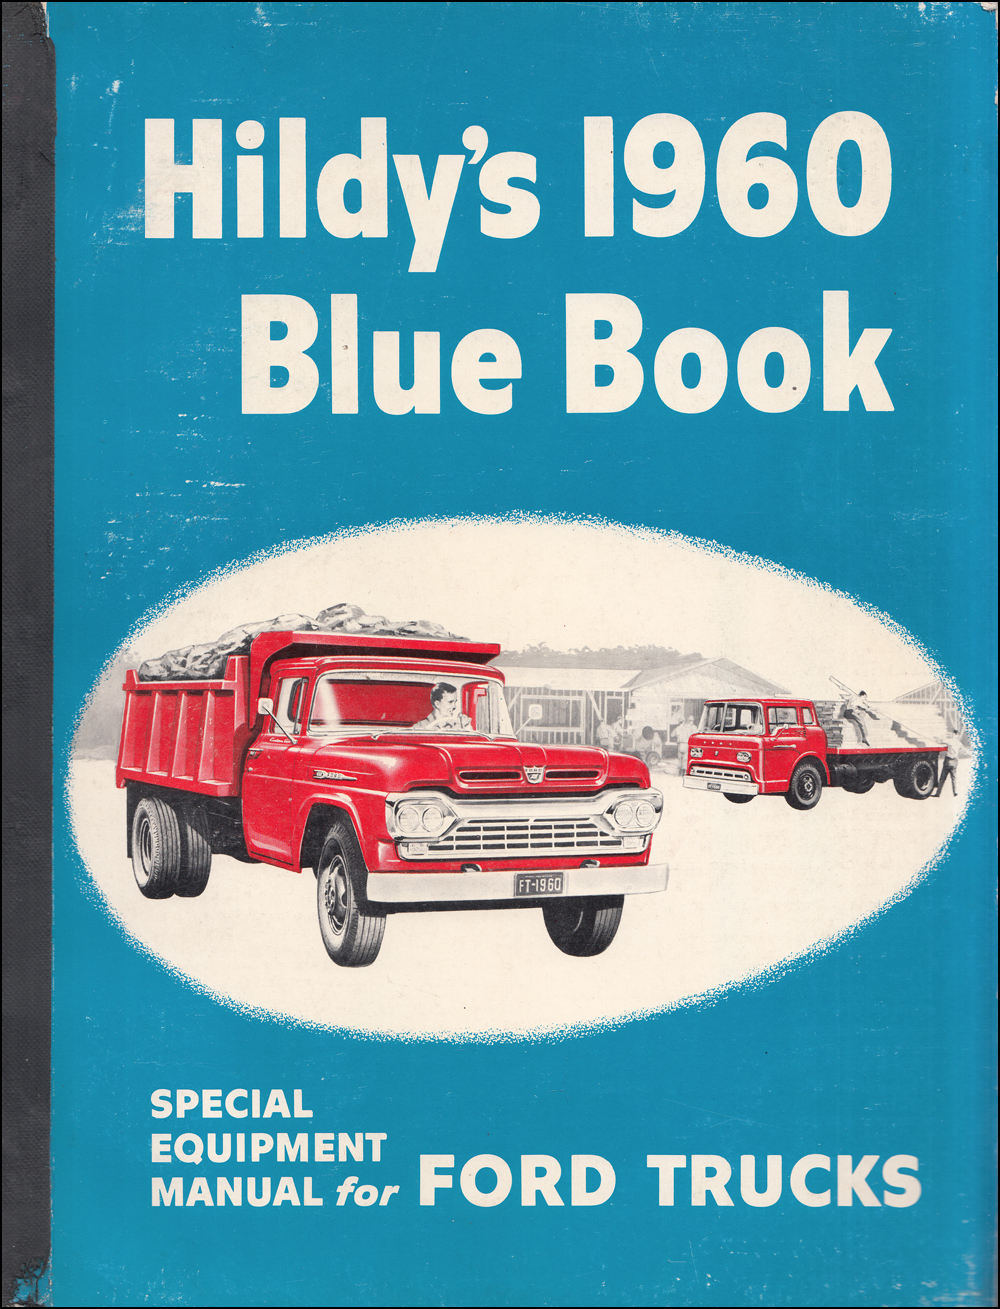 1960 Hildy's Blue Book Ford Truck Special Equipment